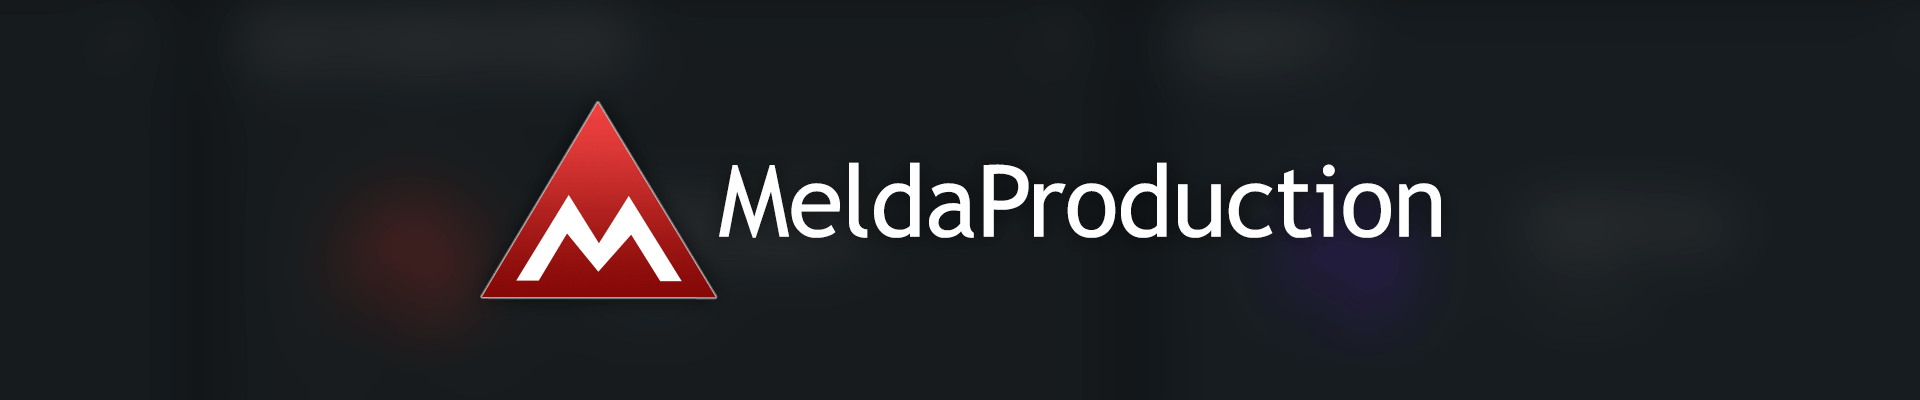 MeldaProduction